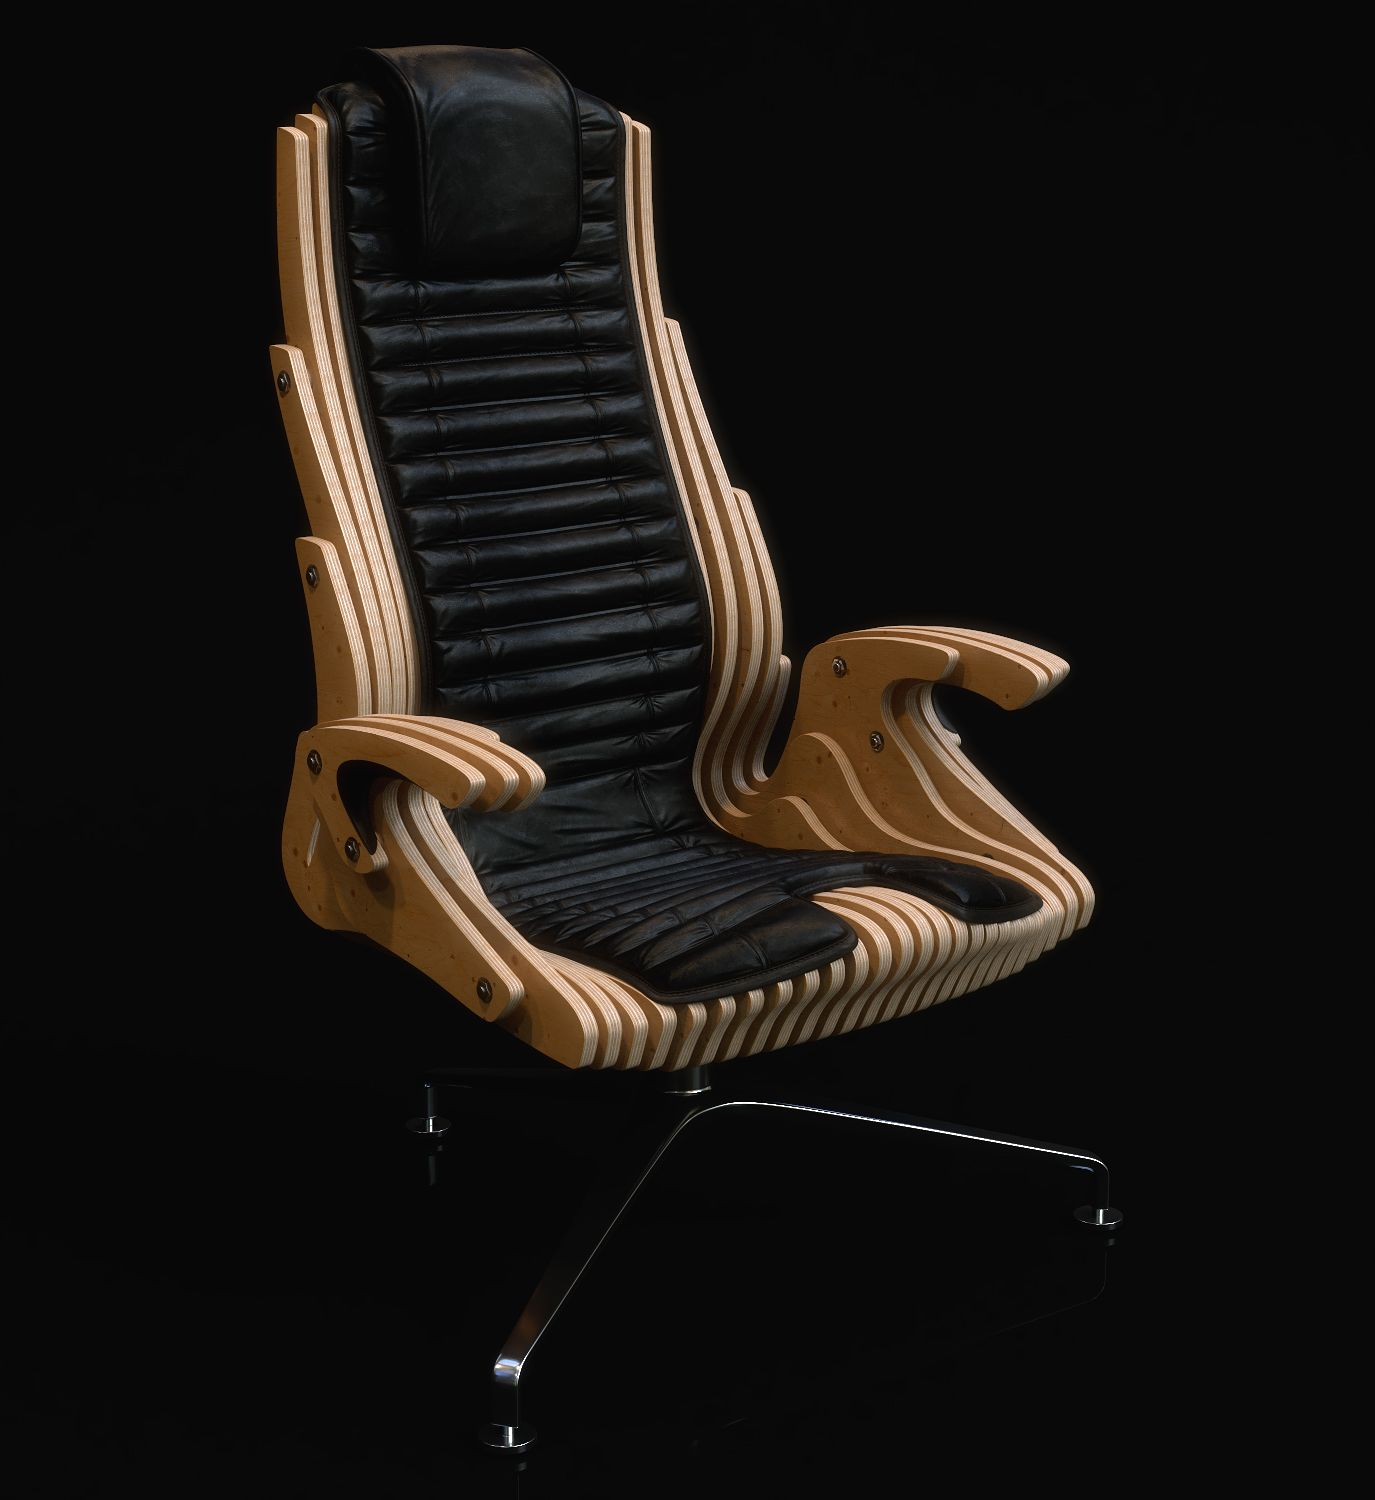 the concept of an office chair in the style of parametric design